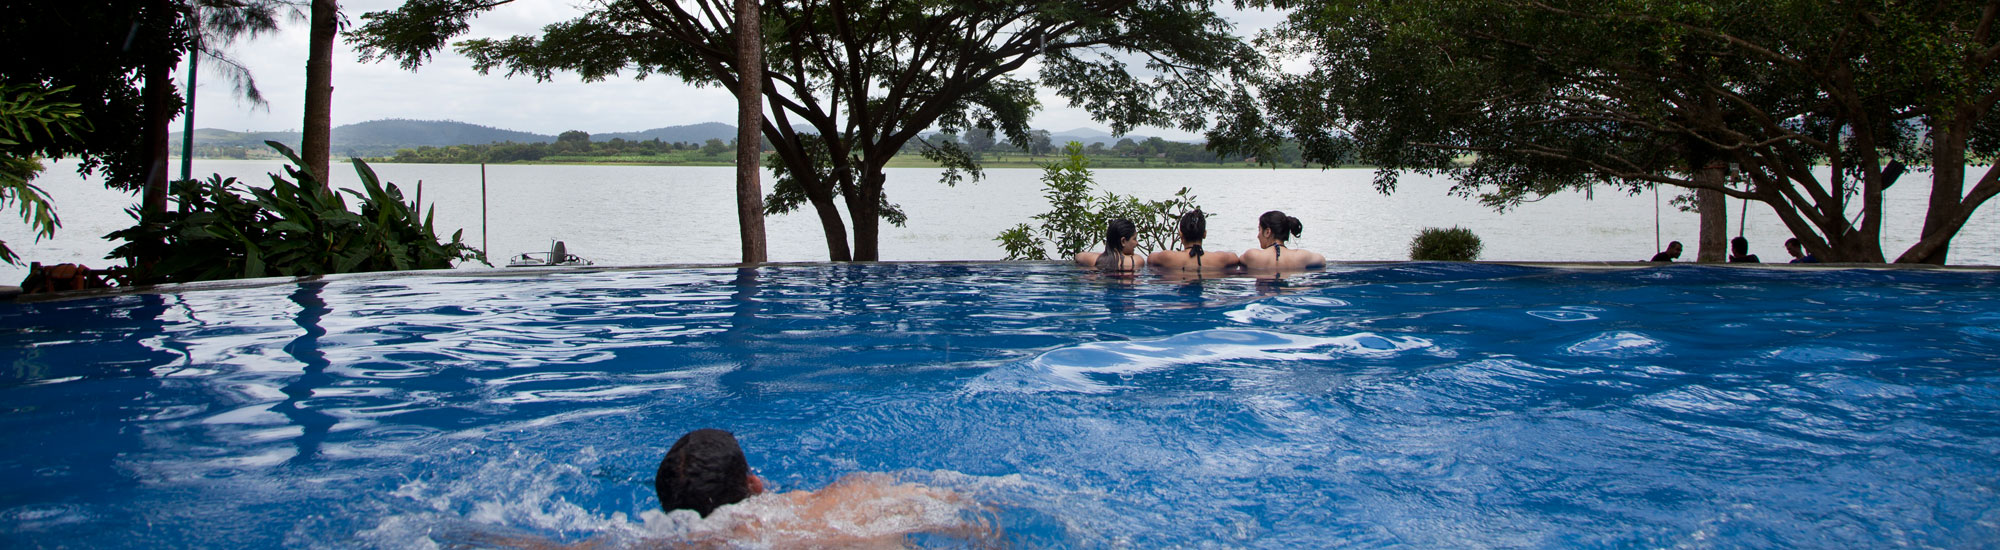 bangalore-getaway-river-lodge-kabini